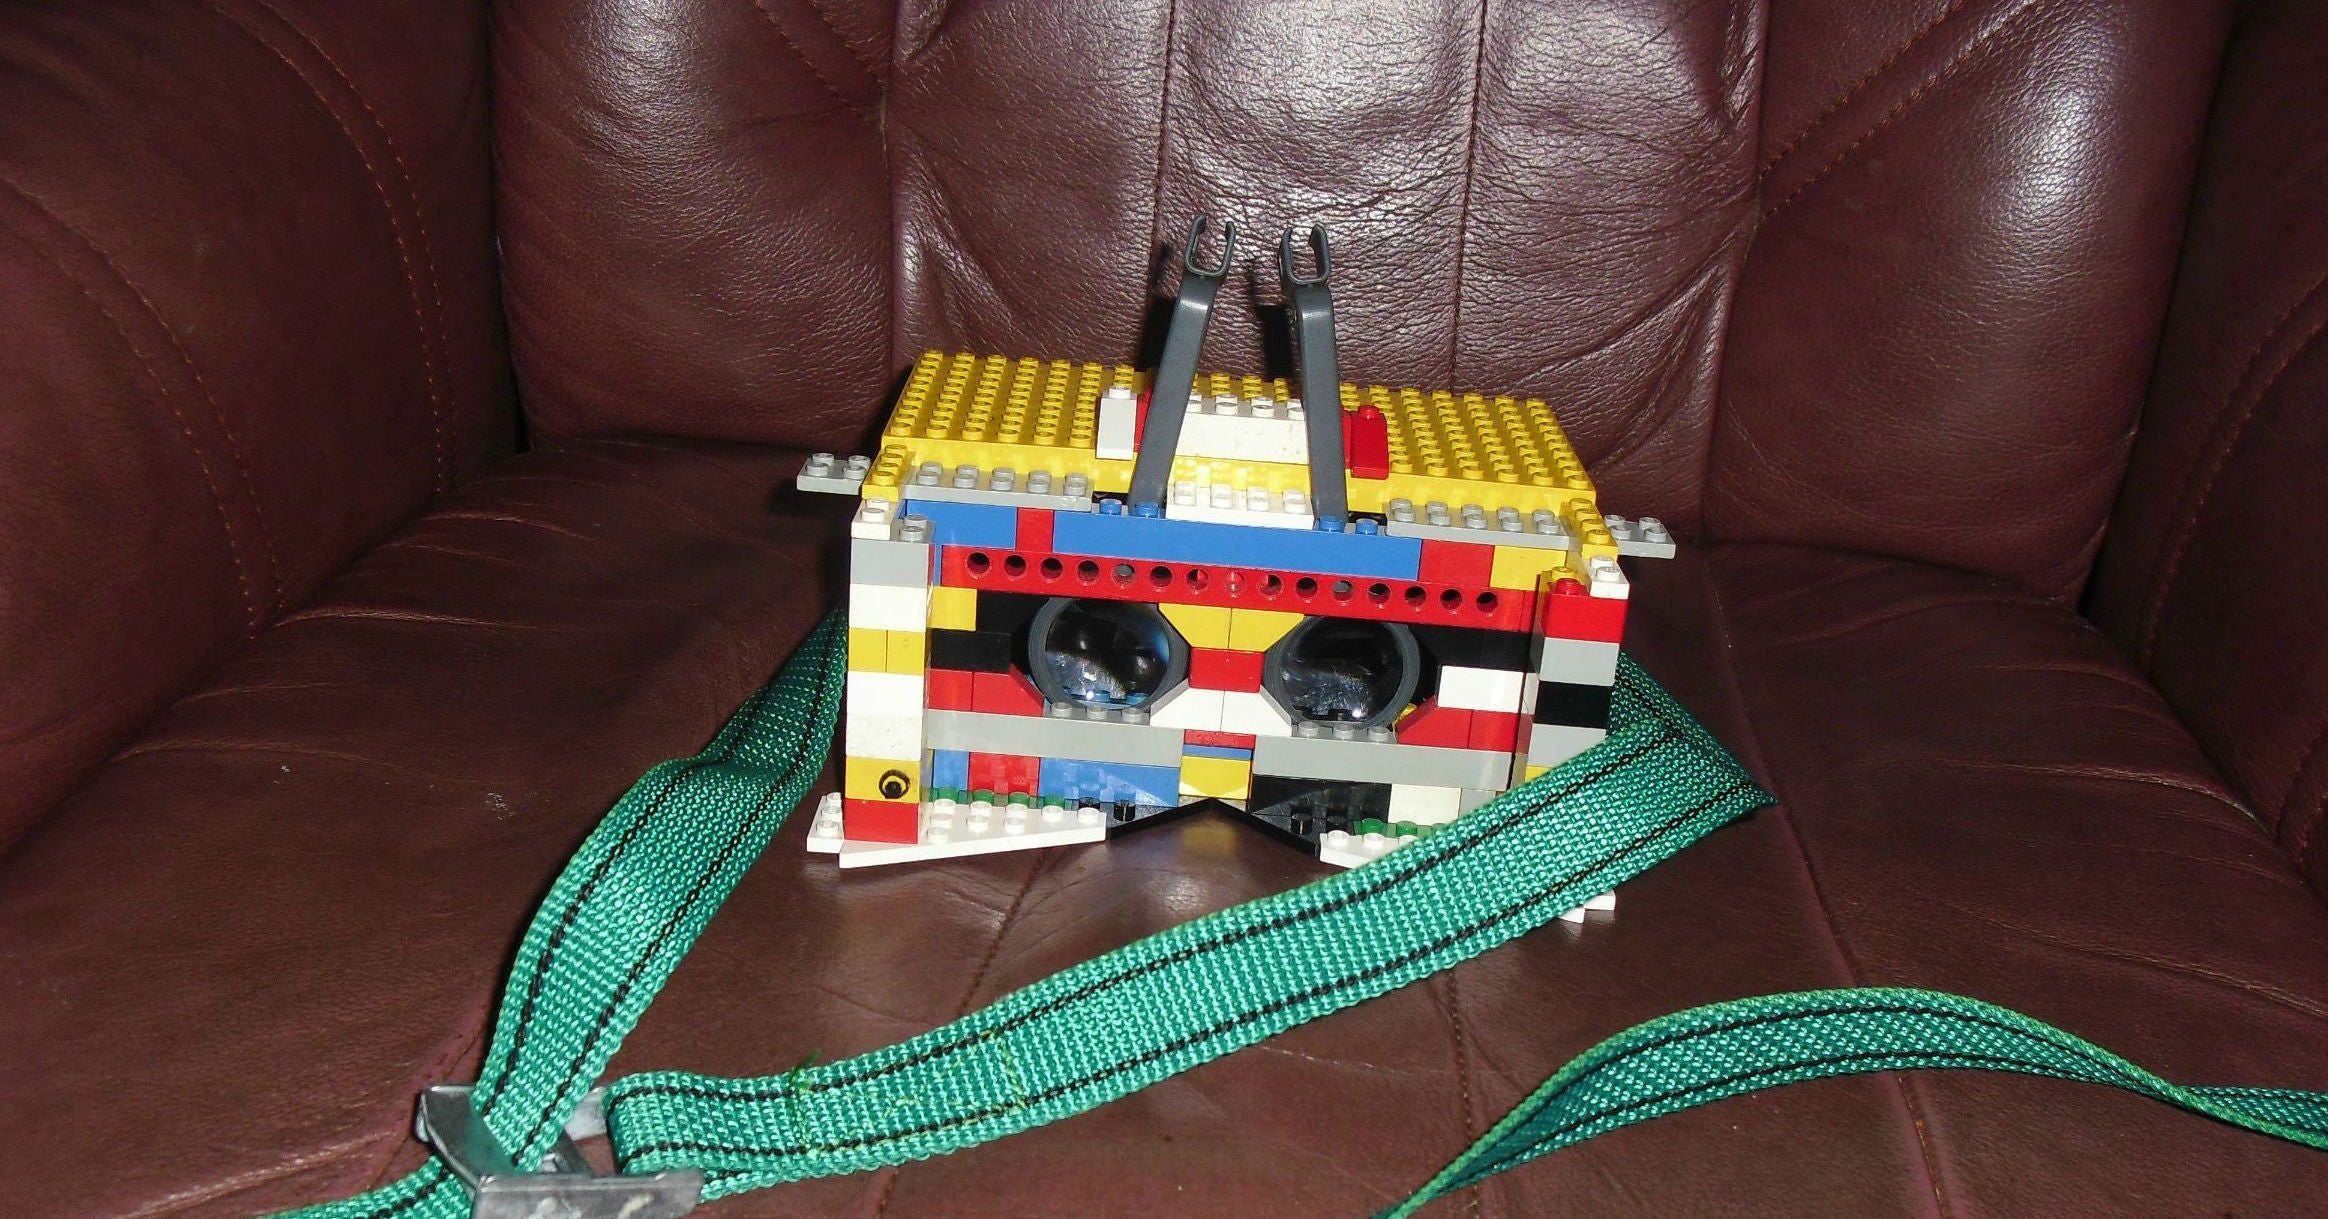 Who Needs an Oculus Rift When You Can Just Strap Lego To Your Face